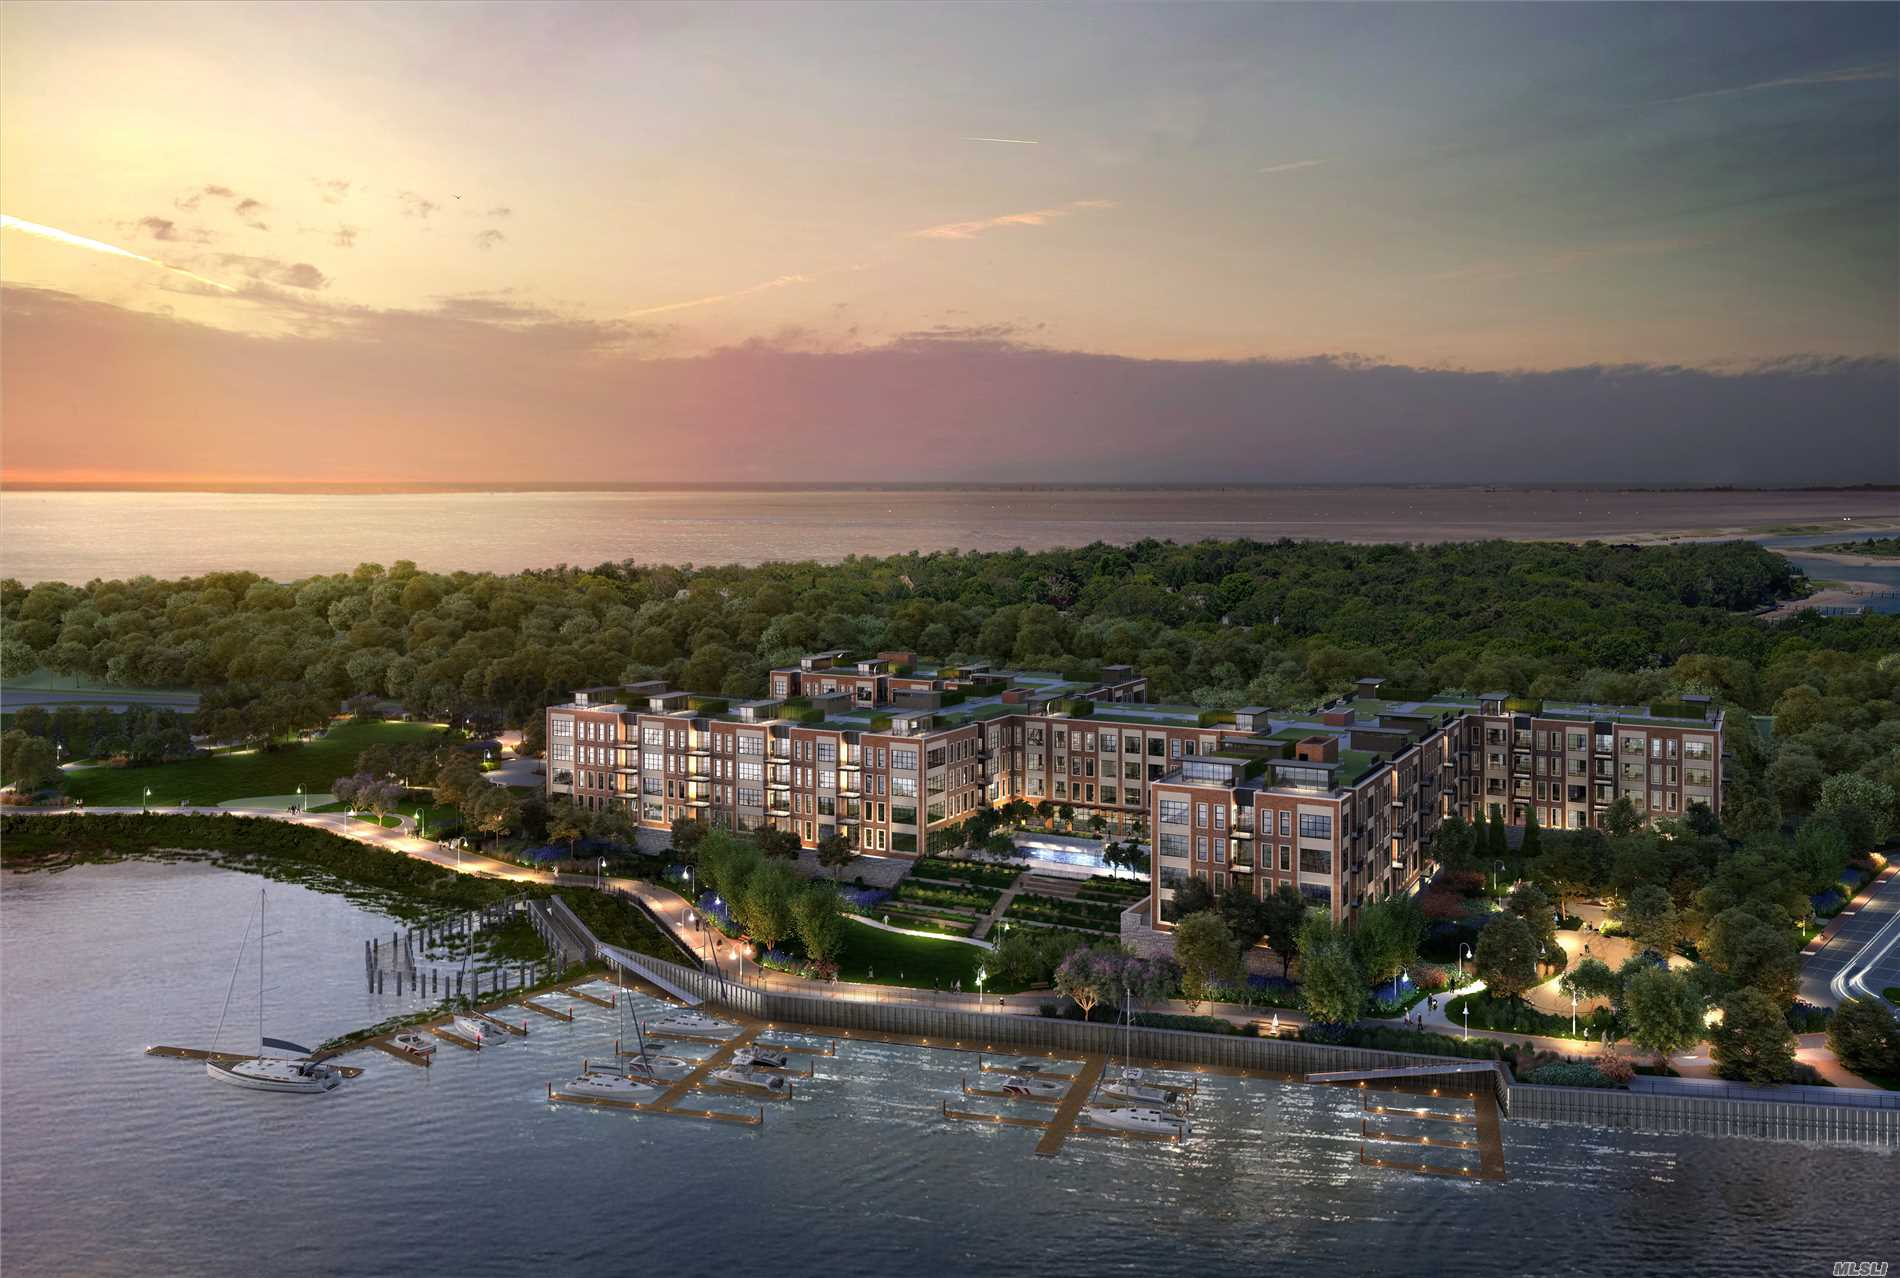 Property for sale at 100 Garvies Point Road # 1119, Glen Cove NY 11542, Glen Cove,  New York 11542